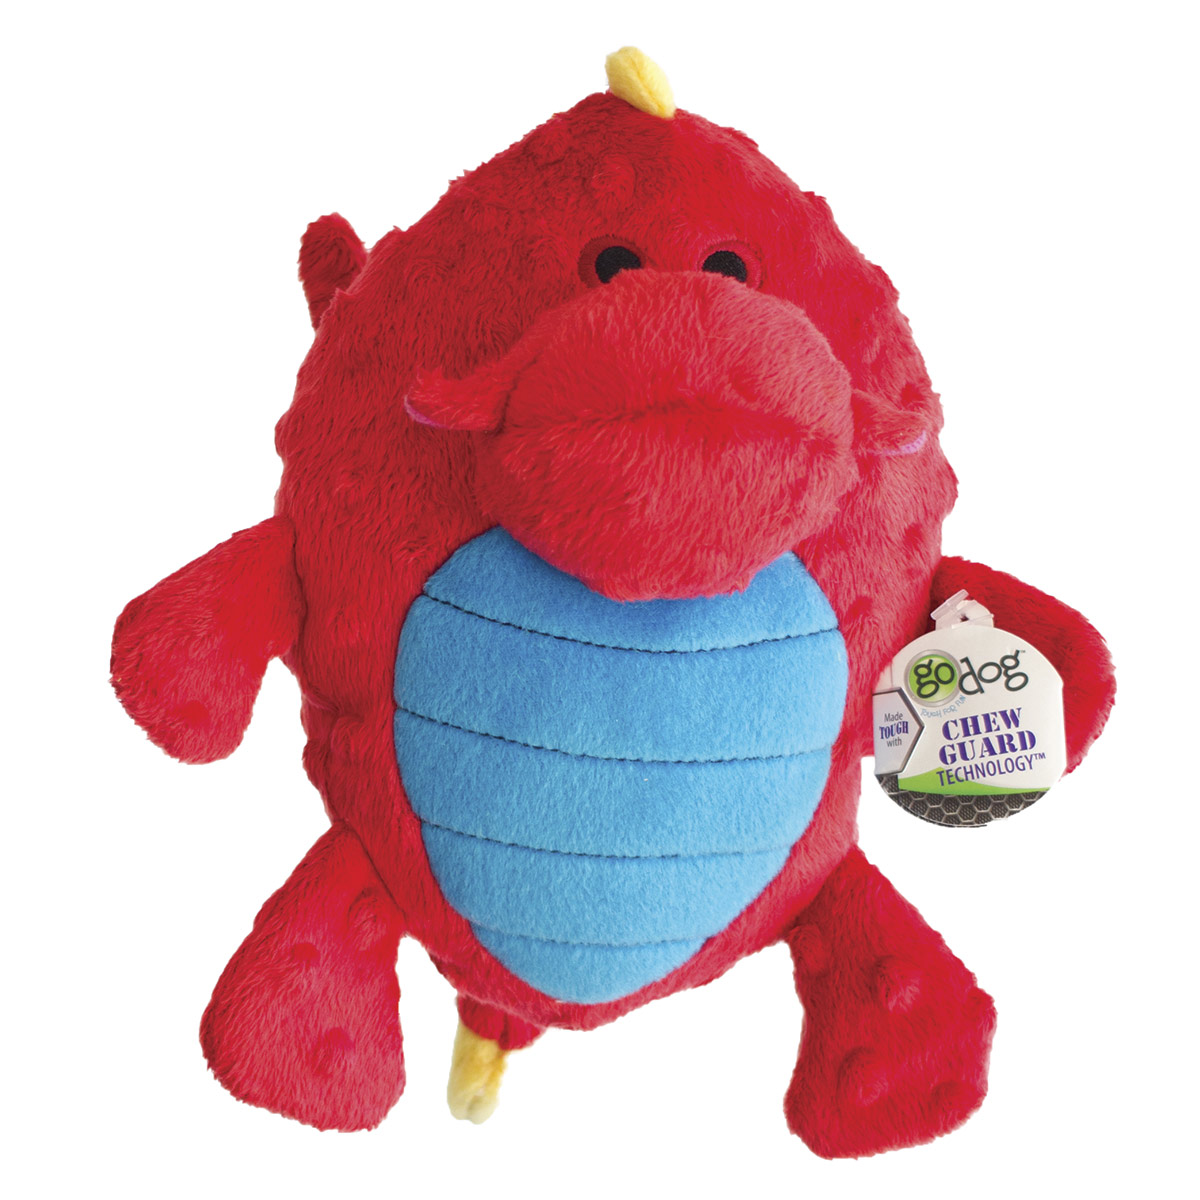 goDog Red Large Dragons Grunting Dog Toy with Chew Guard